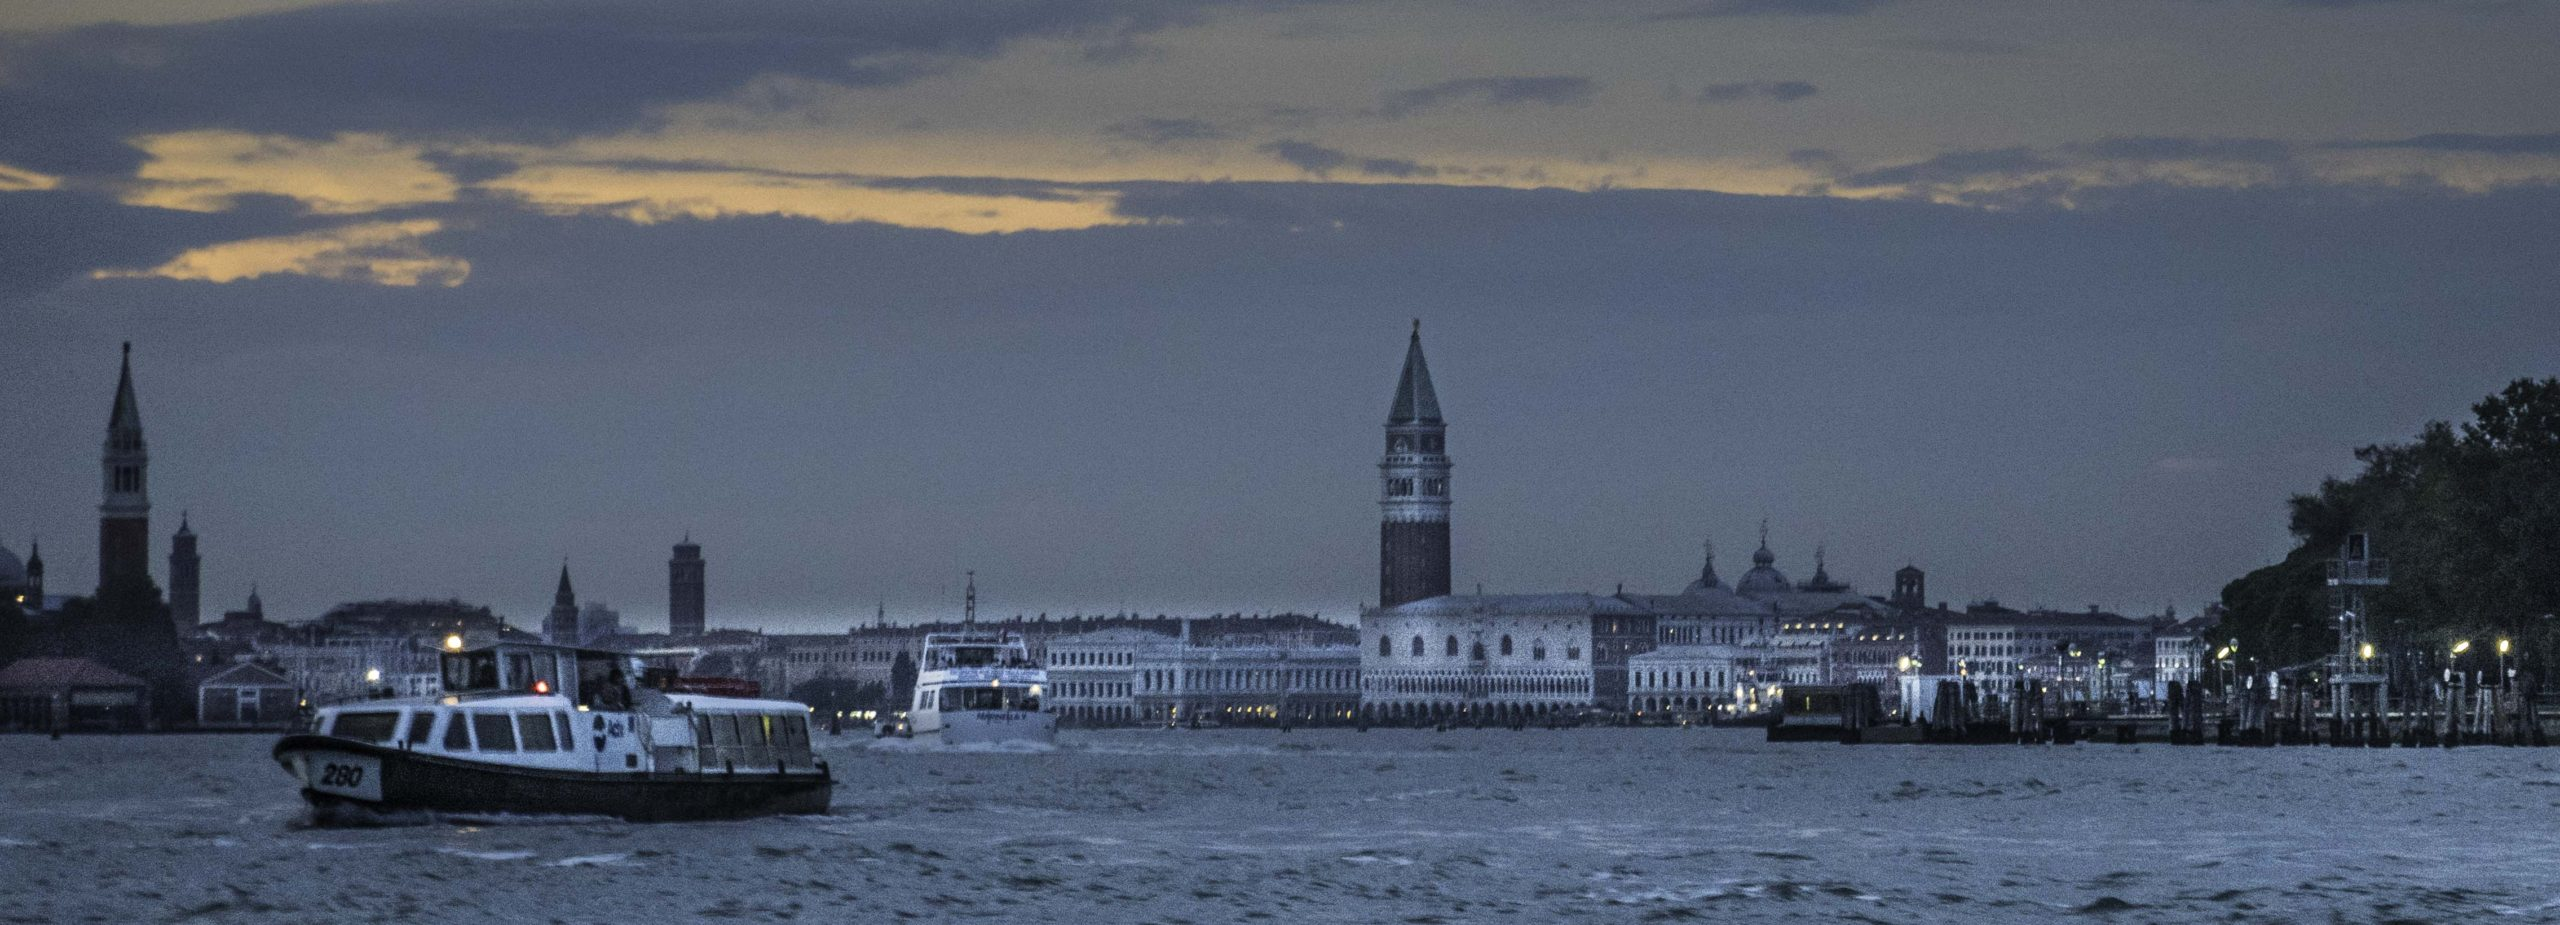 Saint Marks square at dusk, Venice, Italy